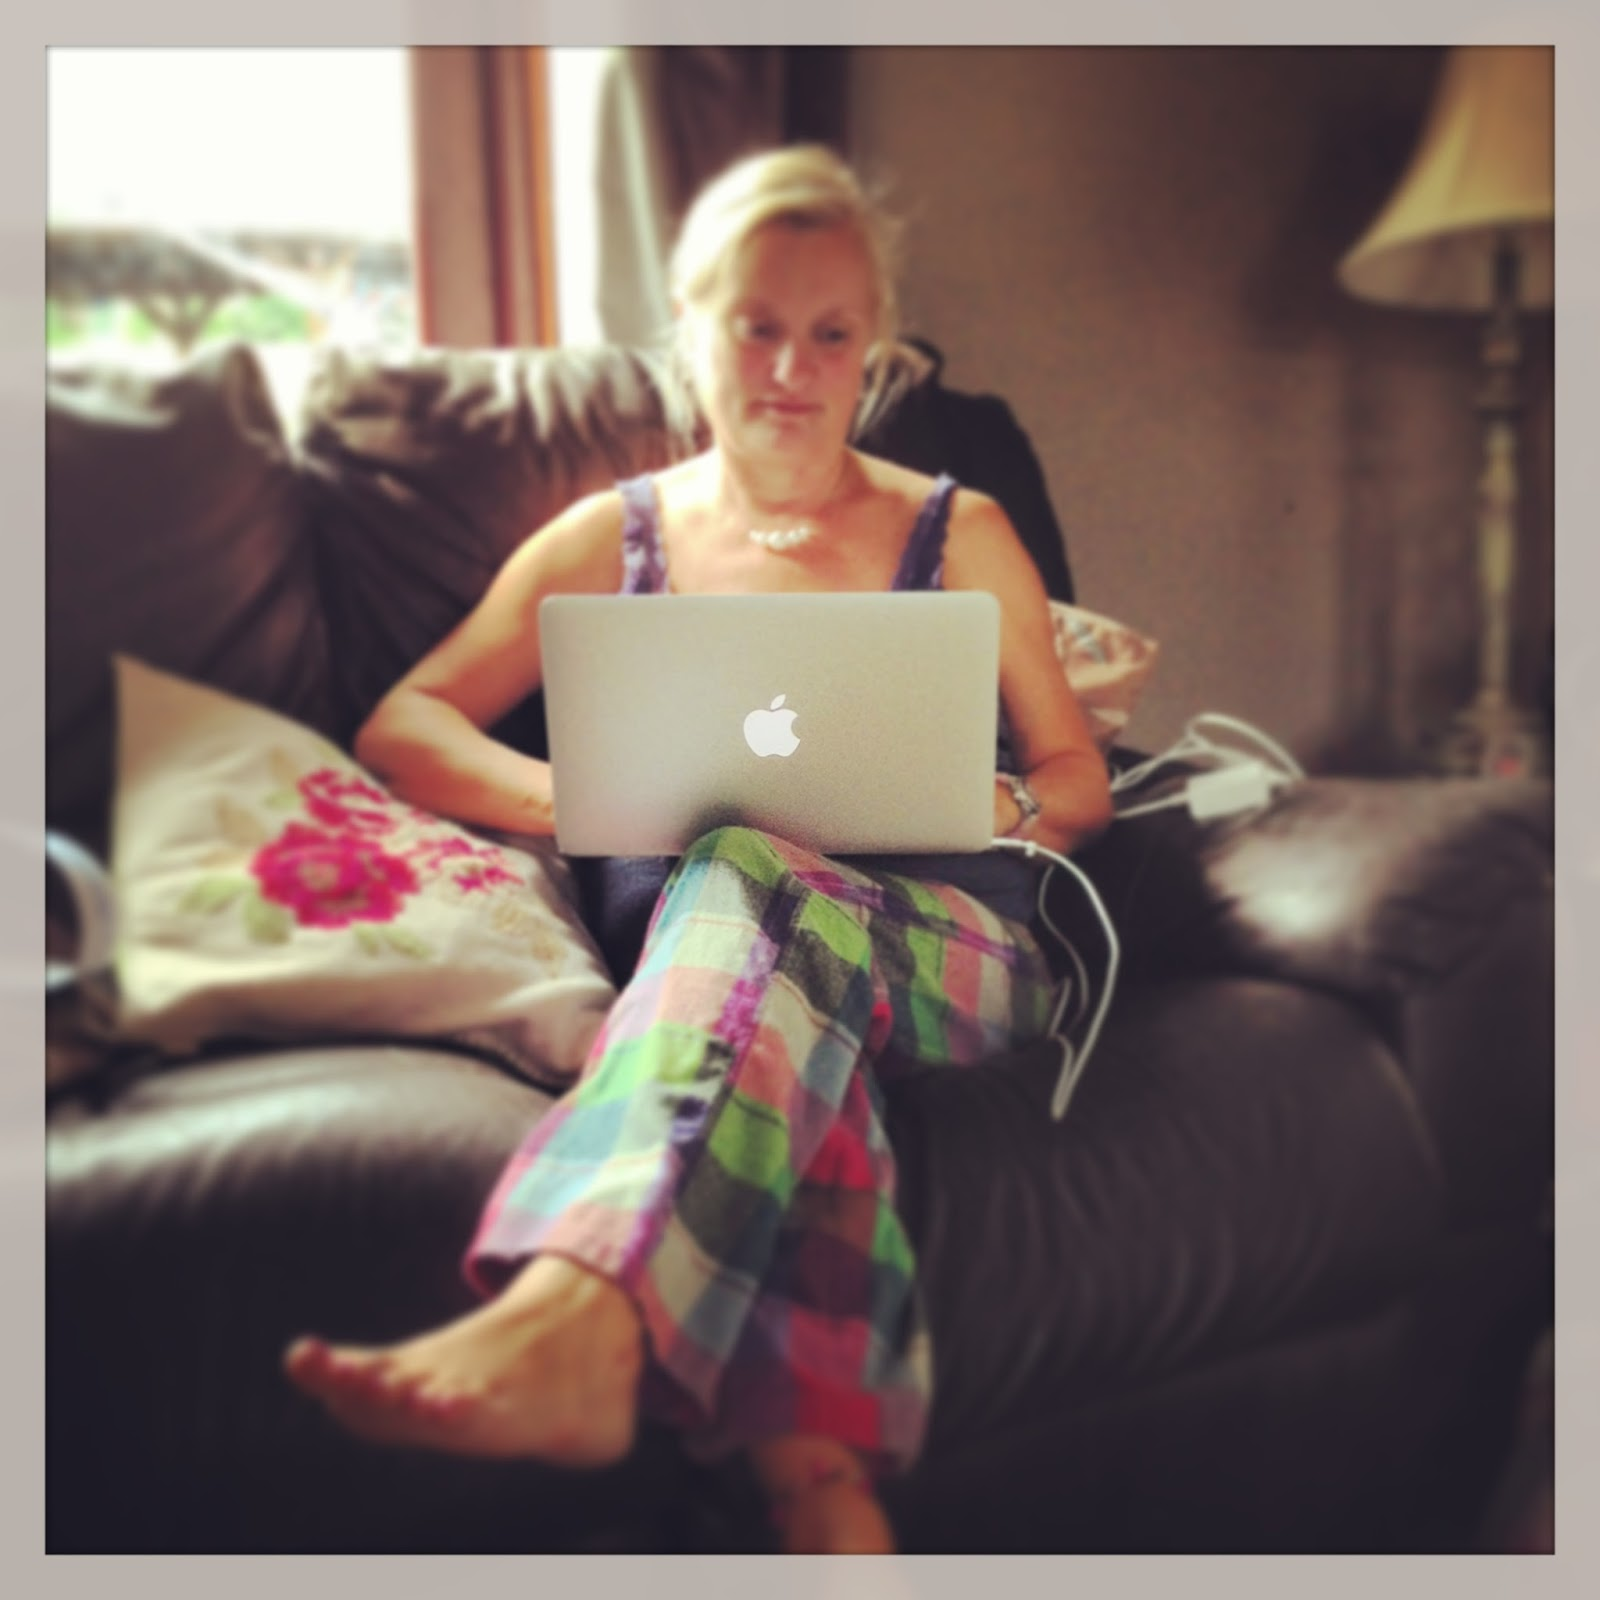 blogger at work in pyjamas